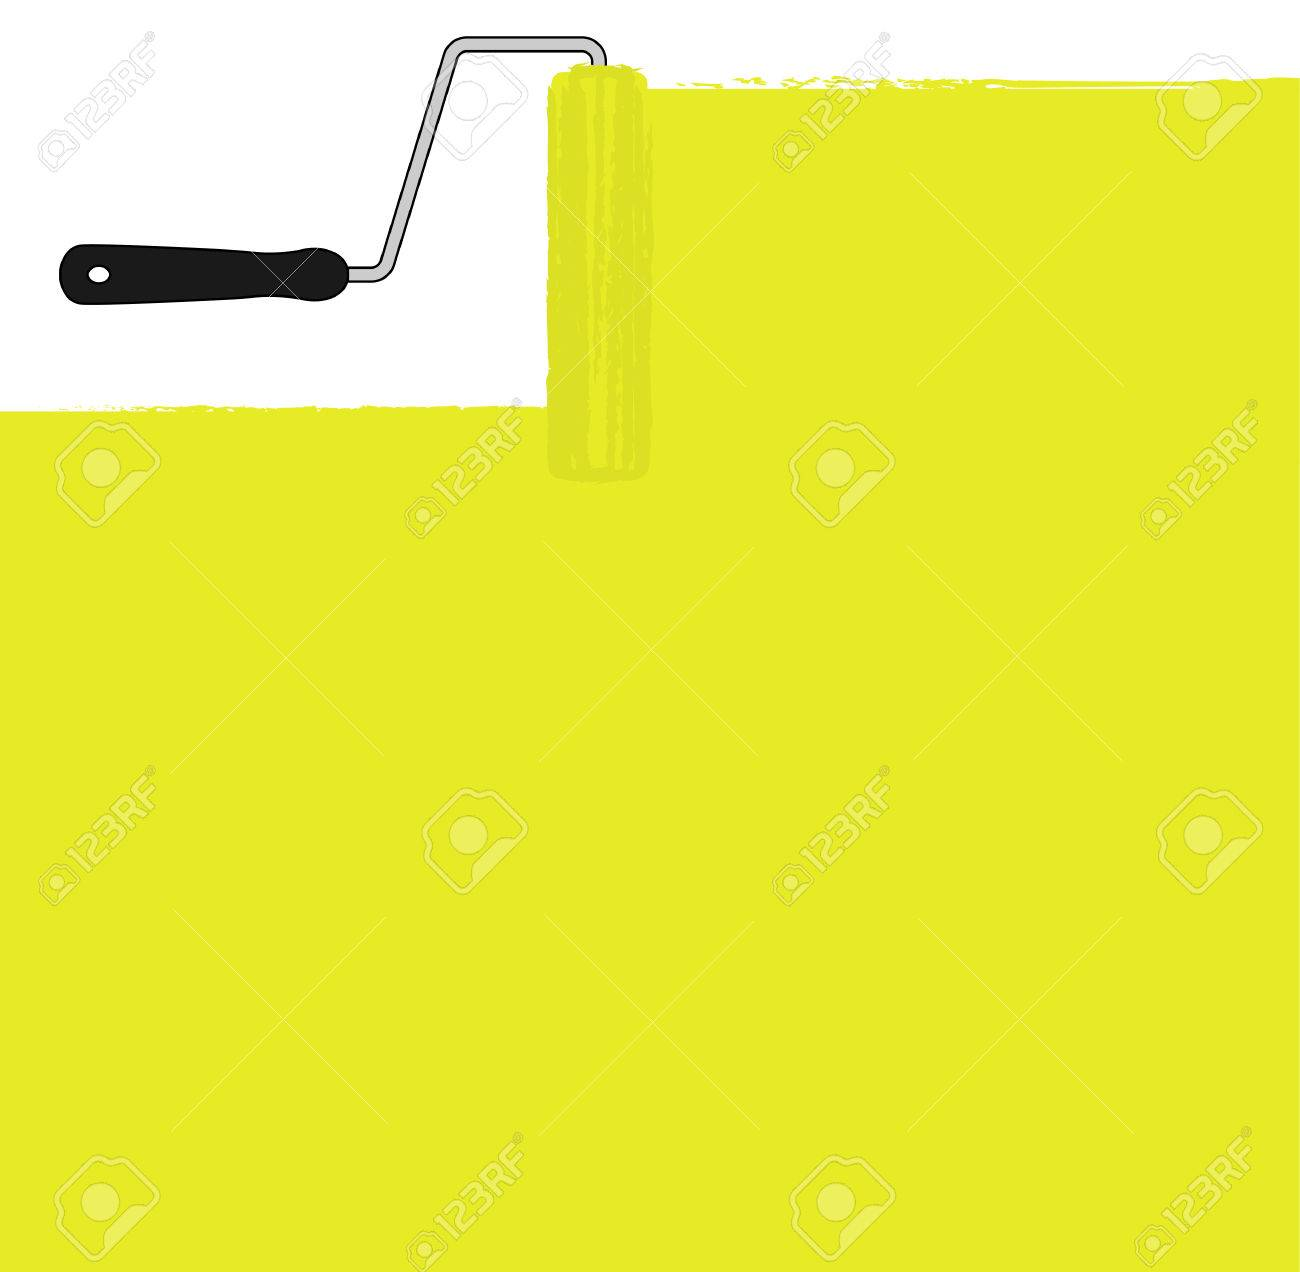 Yellow Paint Roller Painting The Wall. Vector Background Clip ...